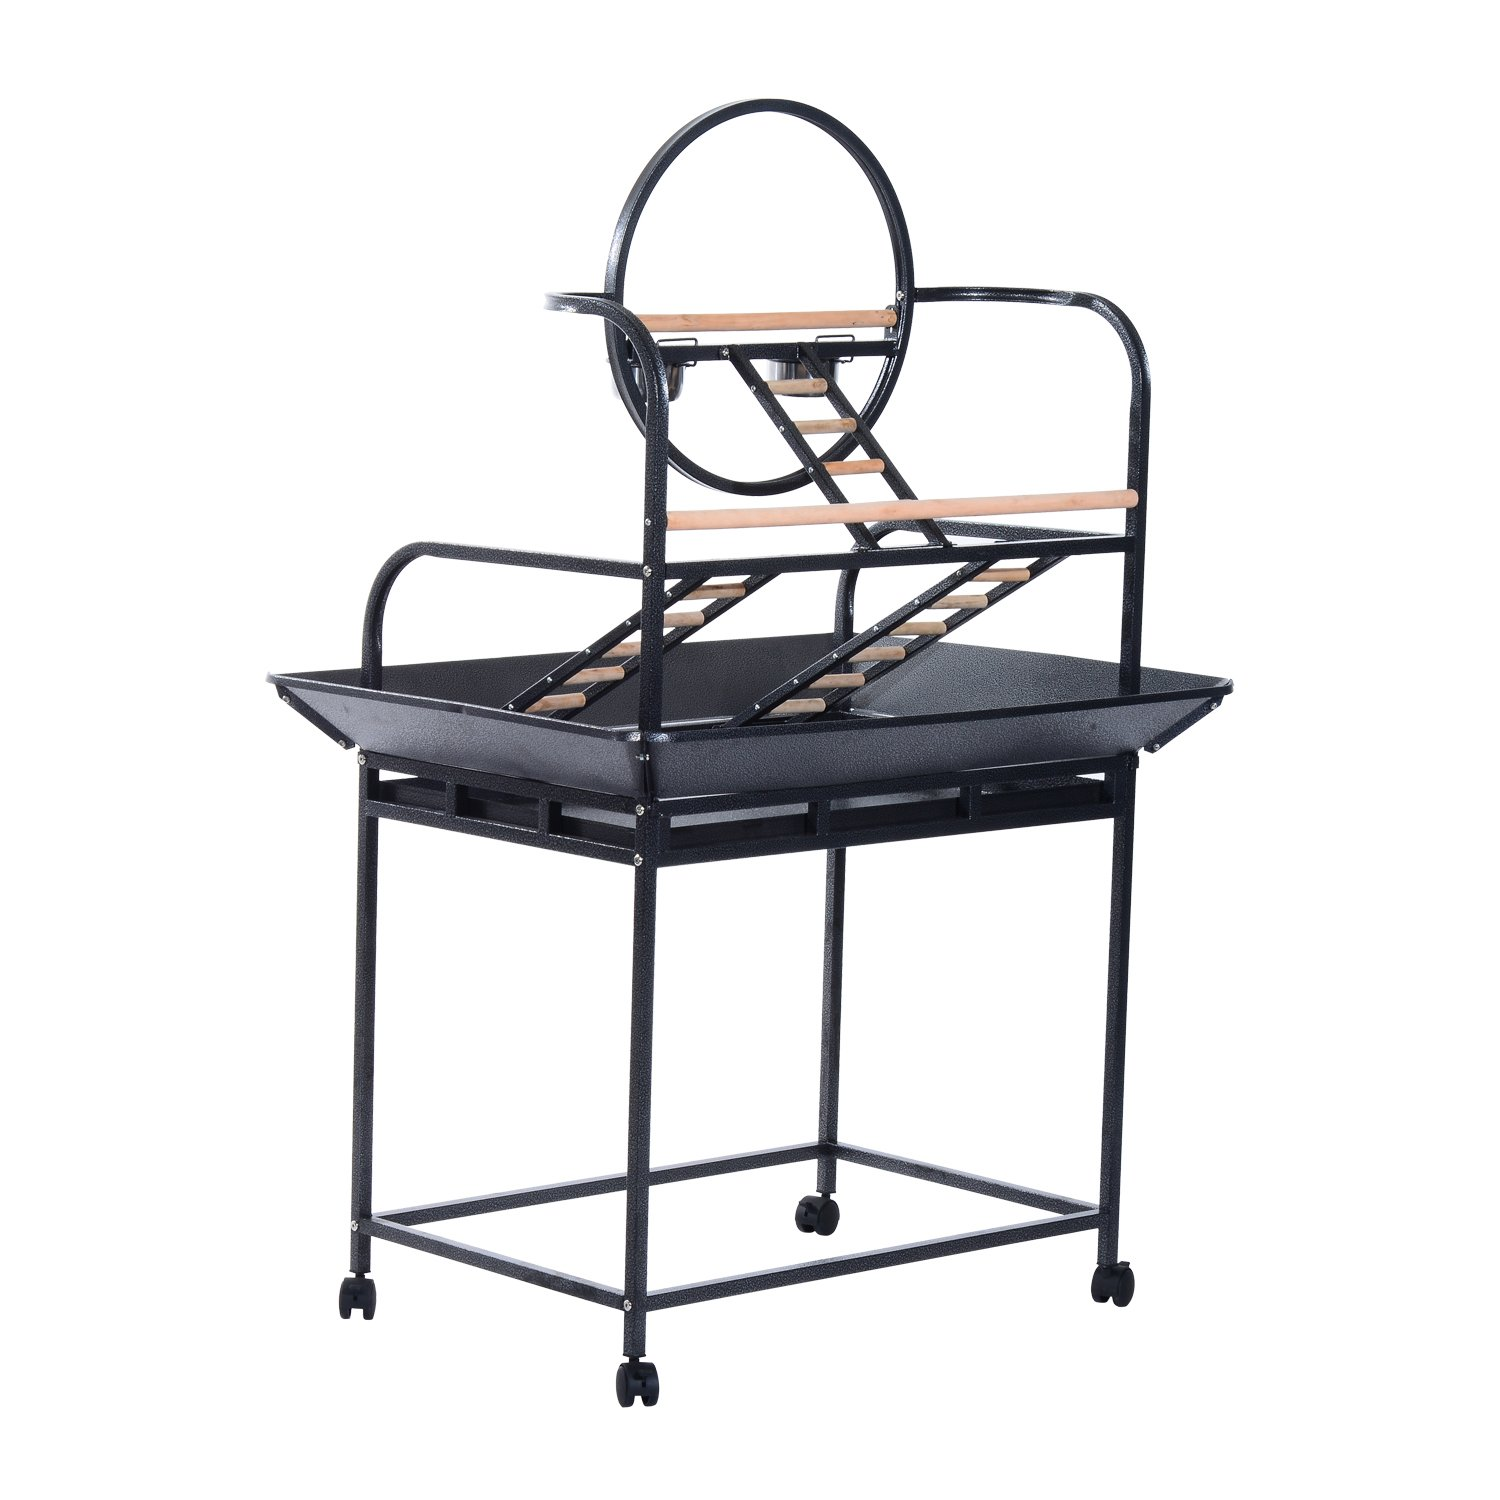 PawHut Rolling Bird Parrot Play Stand Bird Cage Ring Ladder and Feeding Cups w/Wheels Aosom Canada